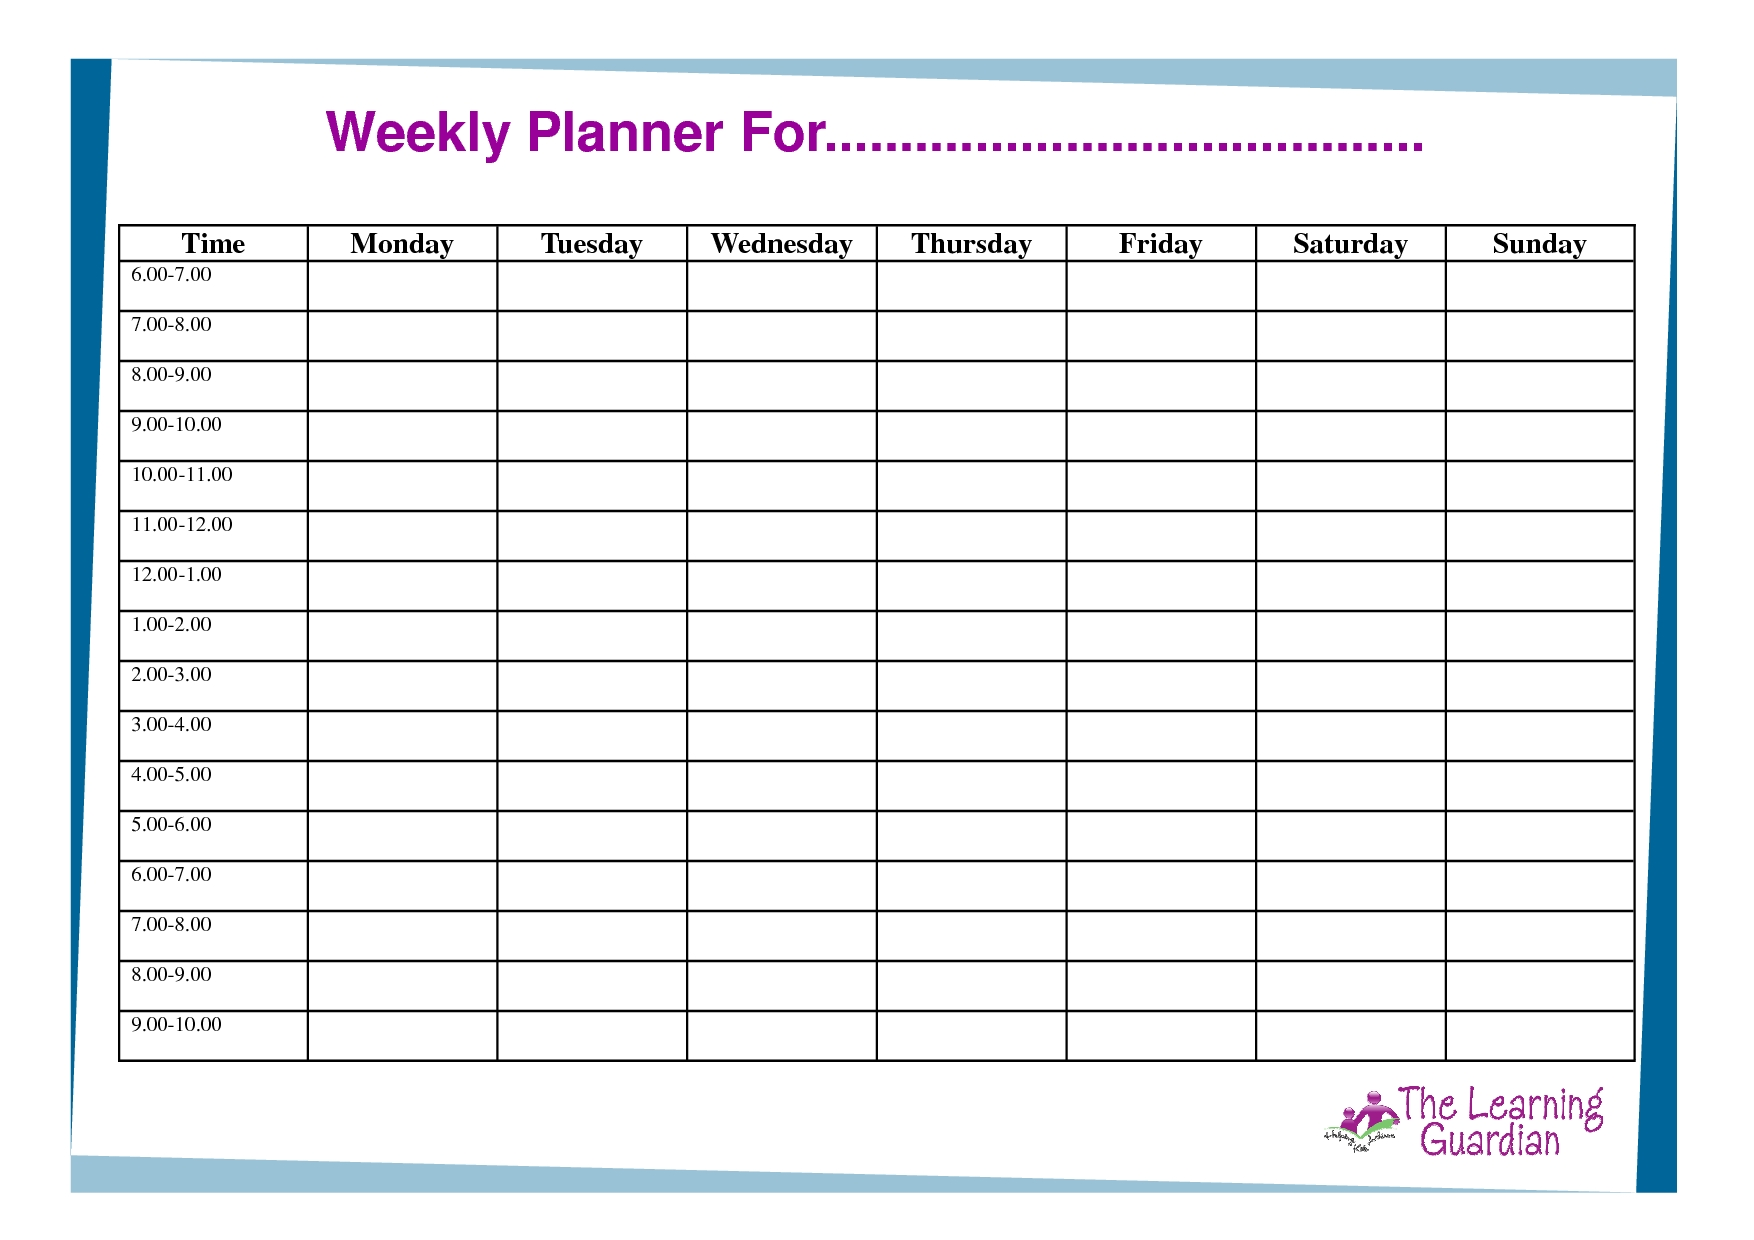 Free Printable Weekly Calendar Templates | Weekly Planner For Time  10 X 8 Planner Template